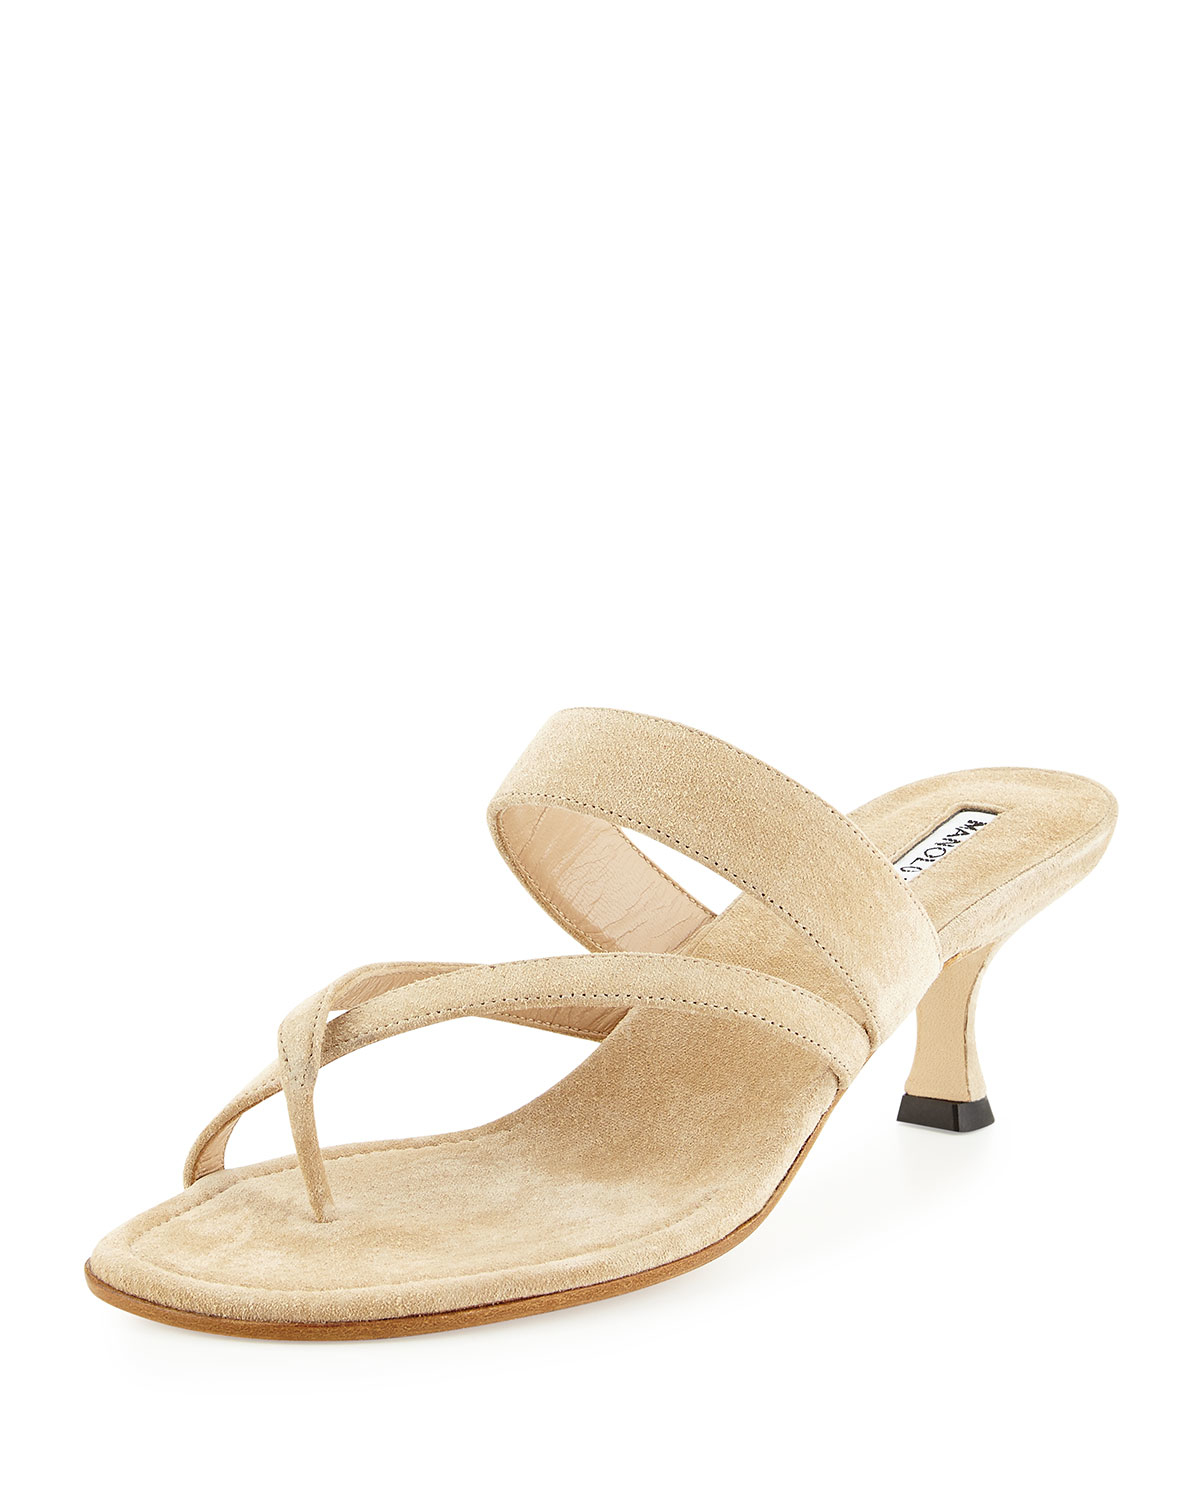 00c2fe704a05 Lyst - Manolo Blahnik Susa Suede Sandal in Natural